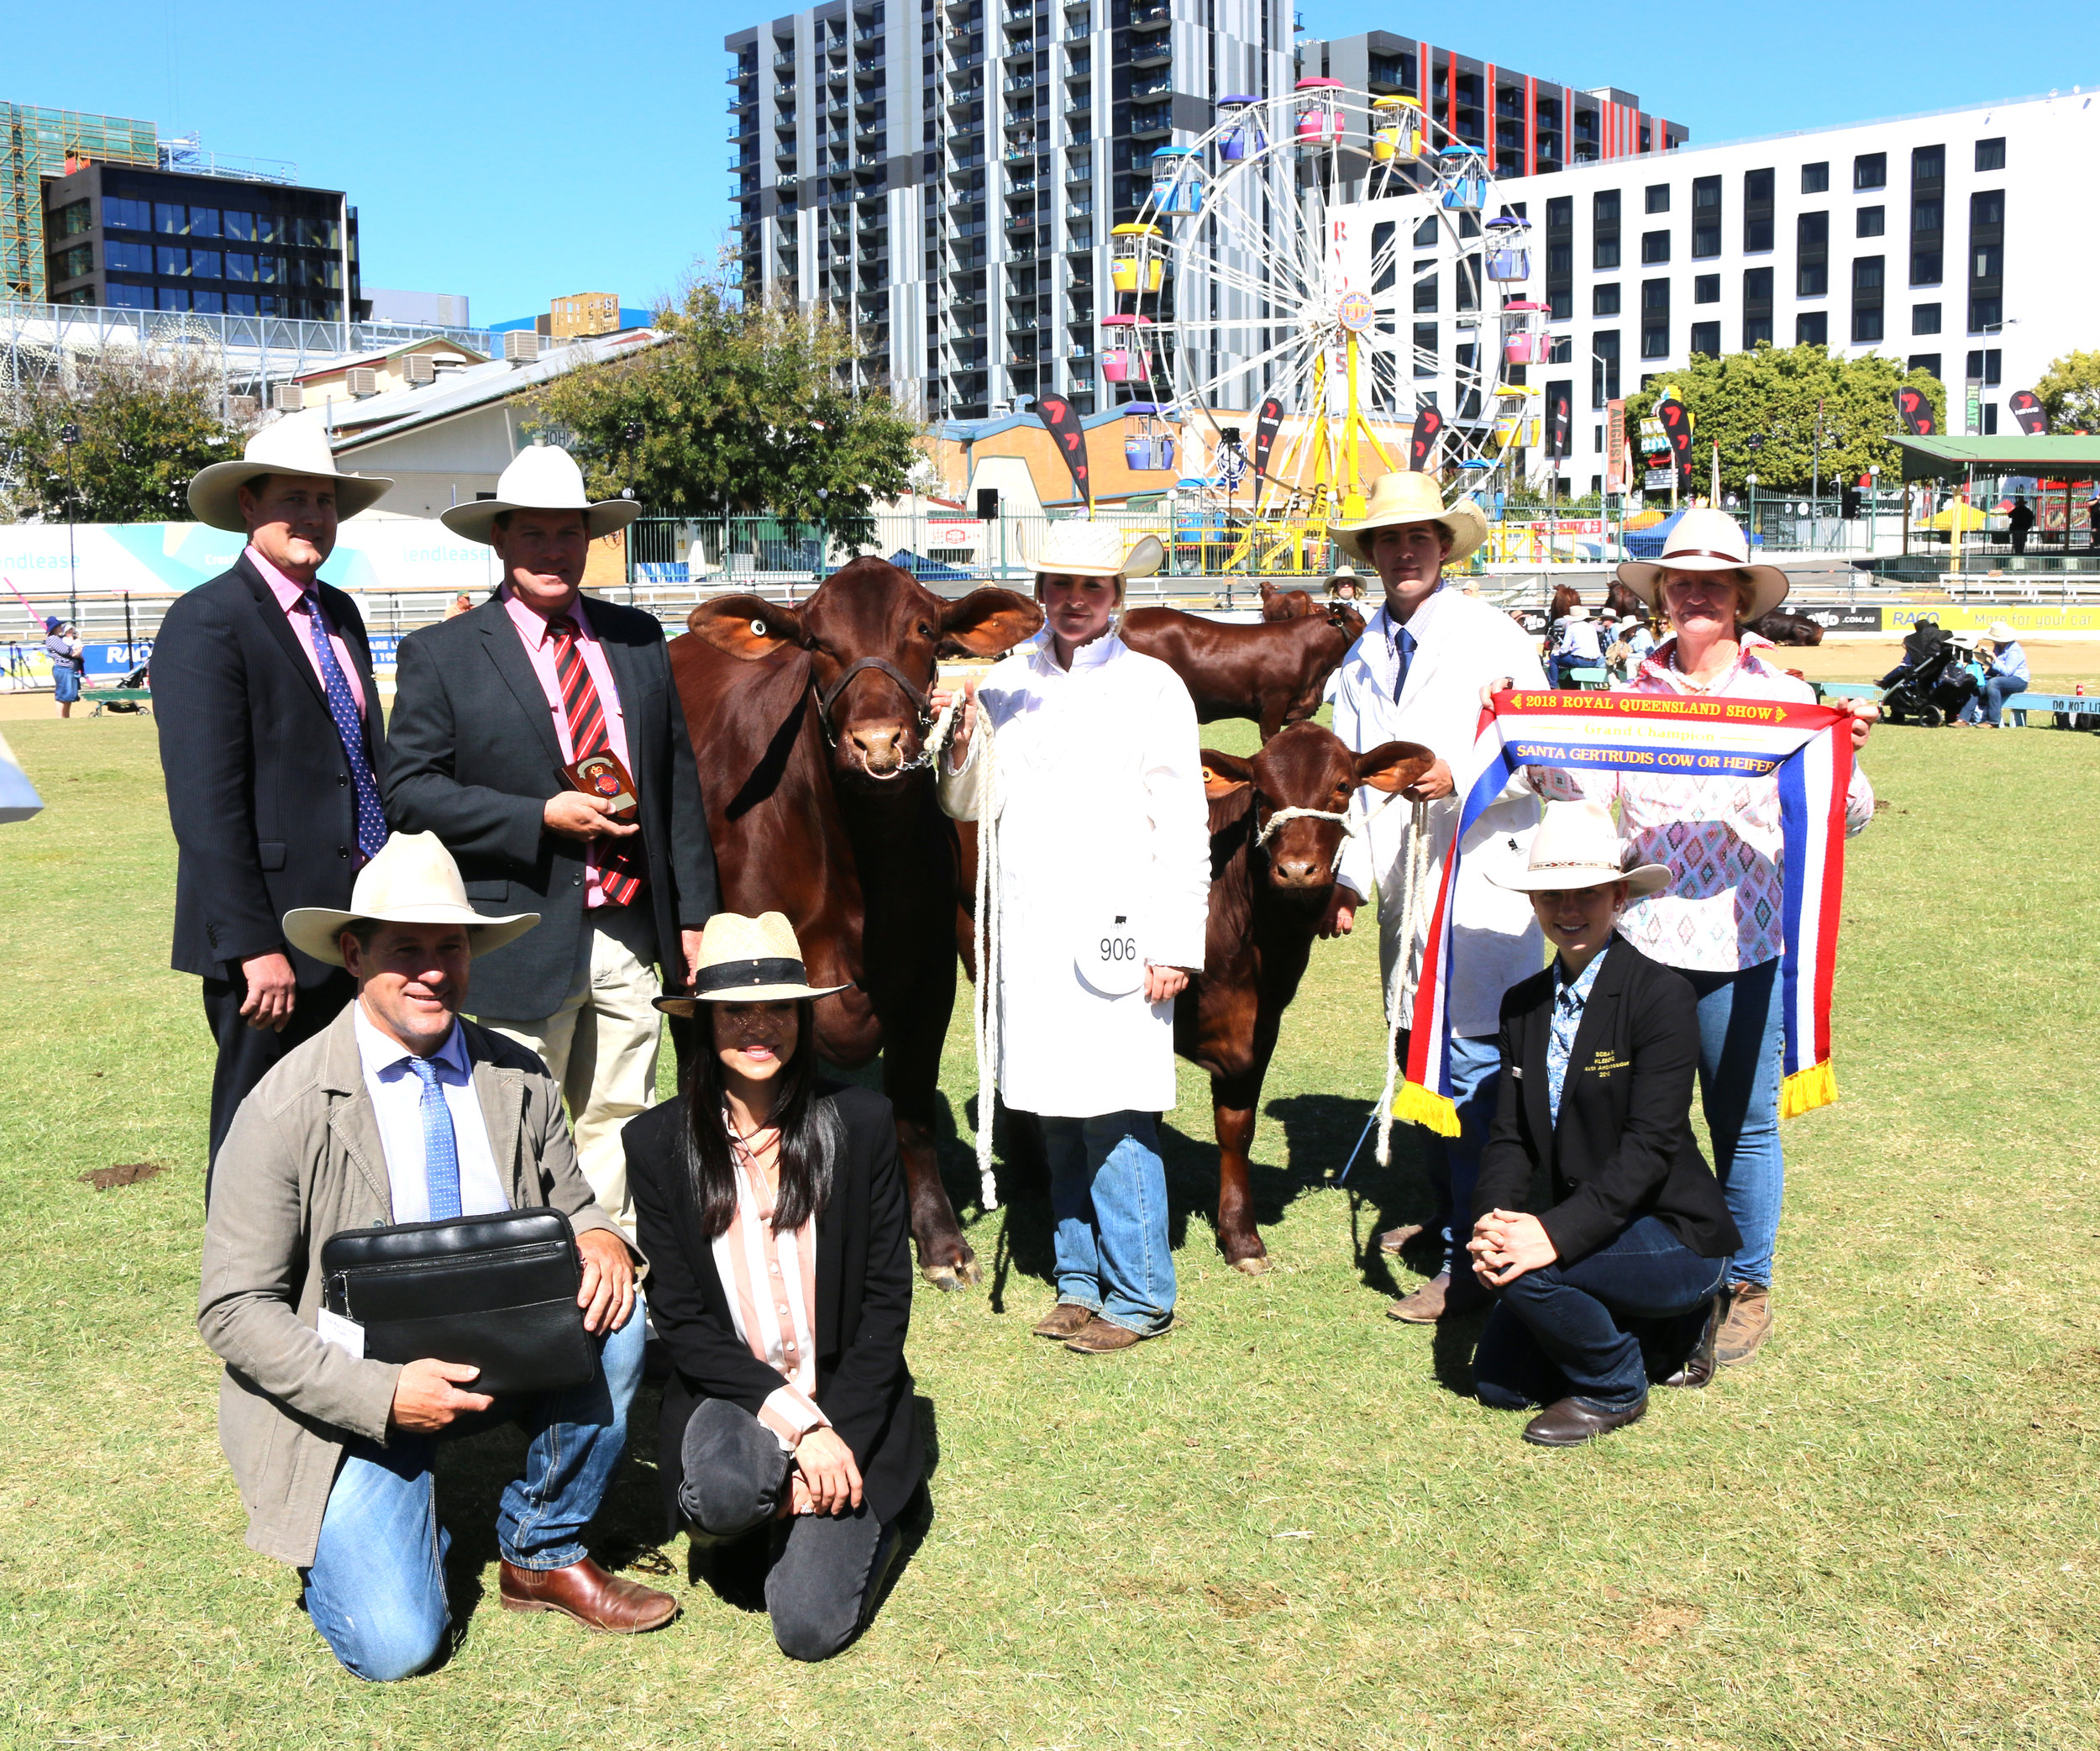 Grand Champion Cow Yarrawonga Gypsy M459 (P). Andrew & Fiona Bassingthwaighte receiving the Big S Group Trophy with Judge Tom Baker, Michael Smith from Elders & ribbon presented by Karen Mayes.